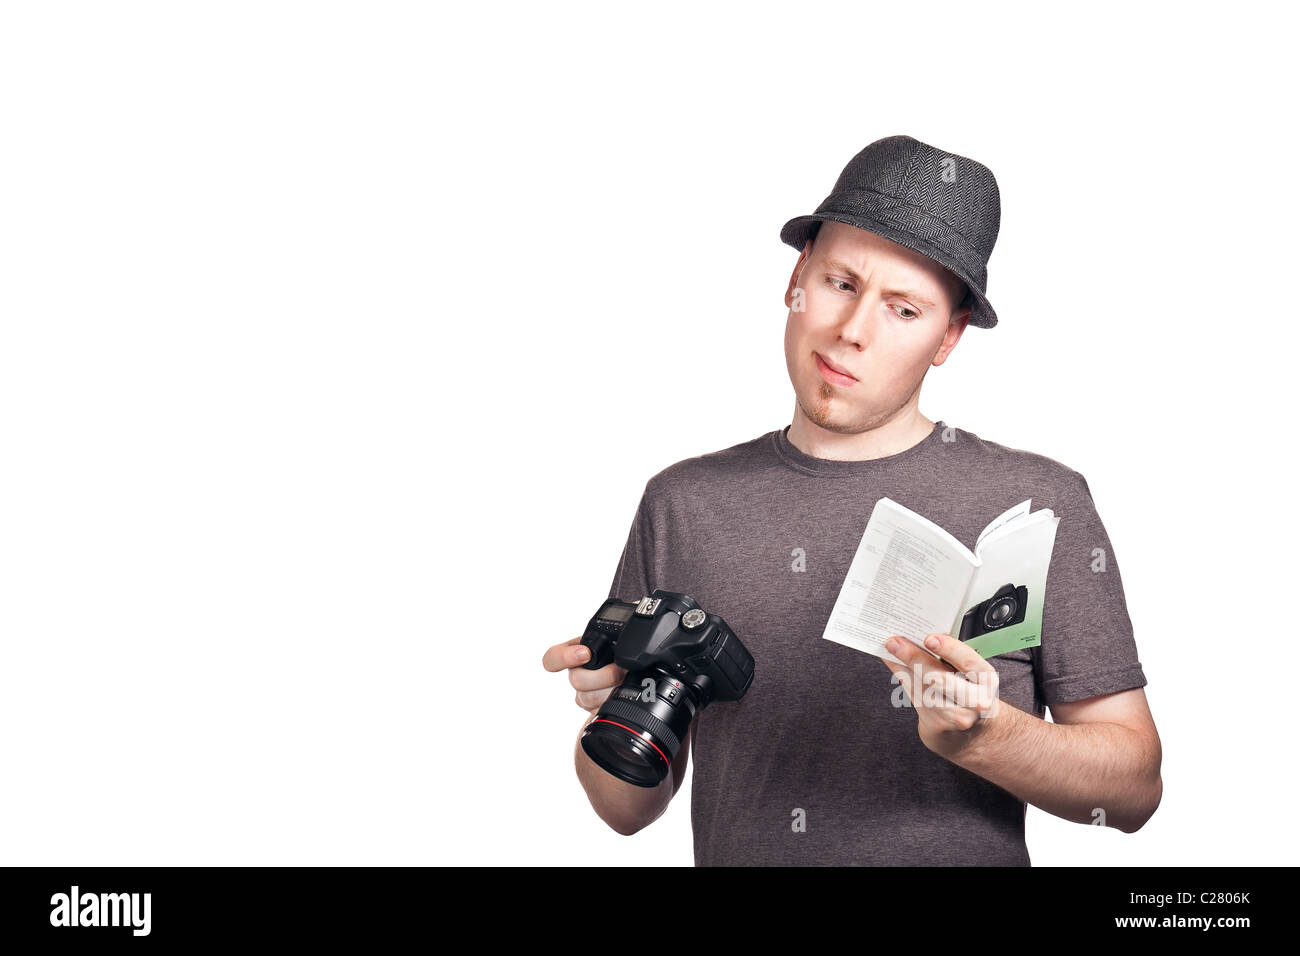 A young man looking confused reading an instruction manual for a DSLR camera. - Stock Image